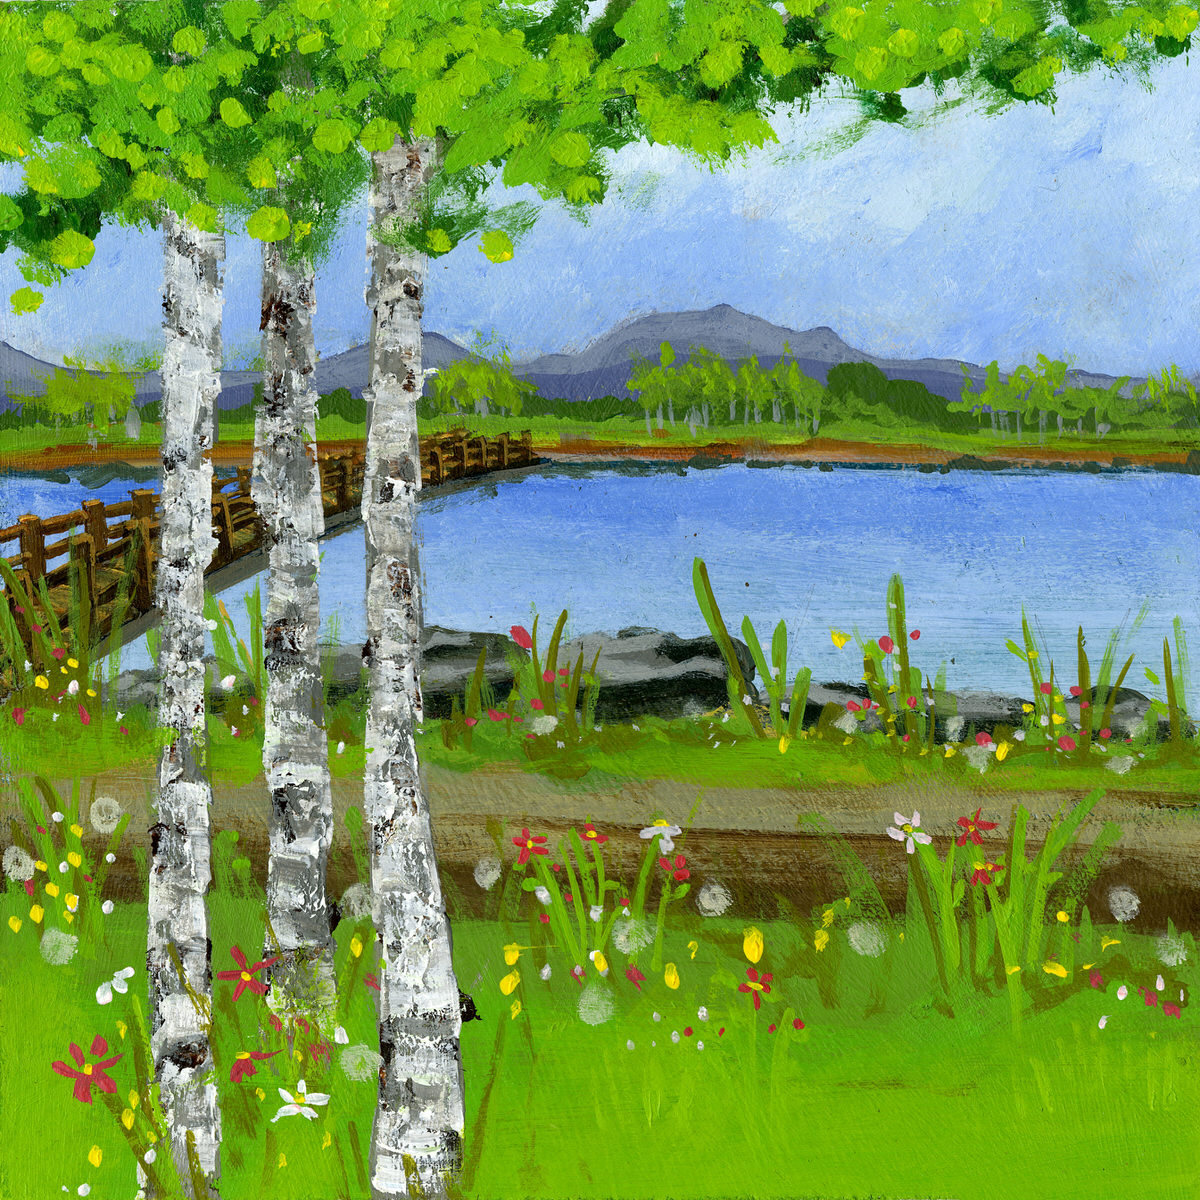 scenic scenery painting from the book A Trip Around the Pond